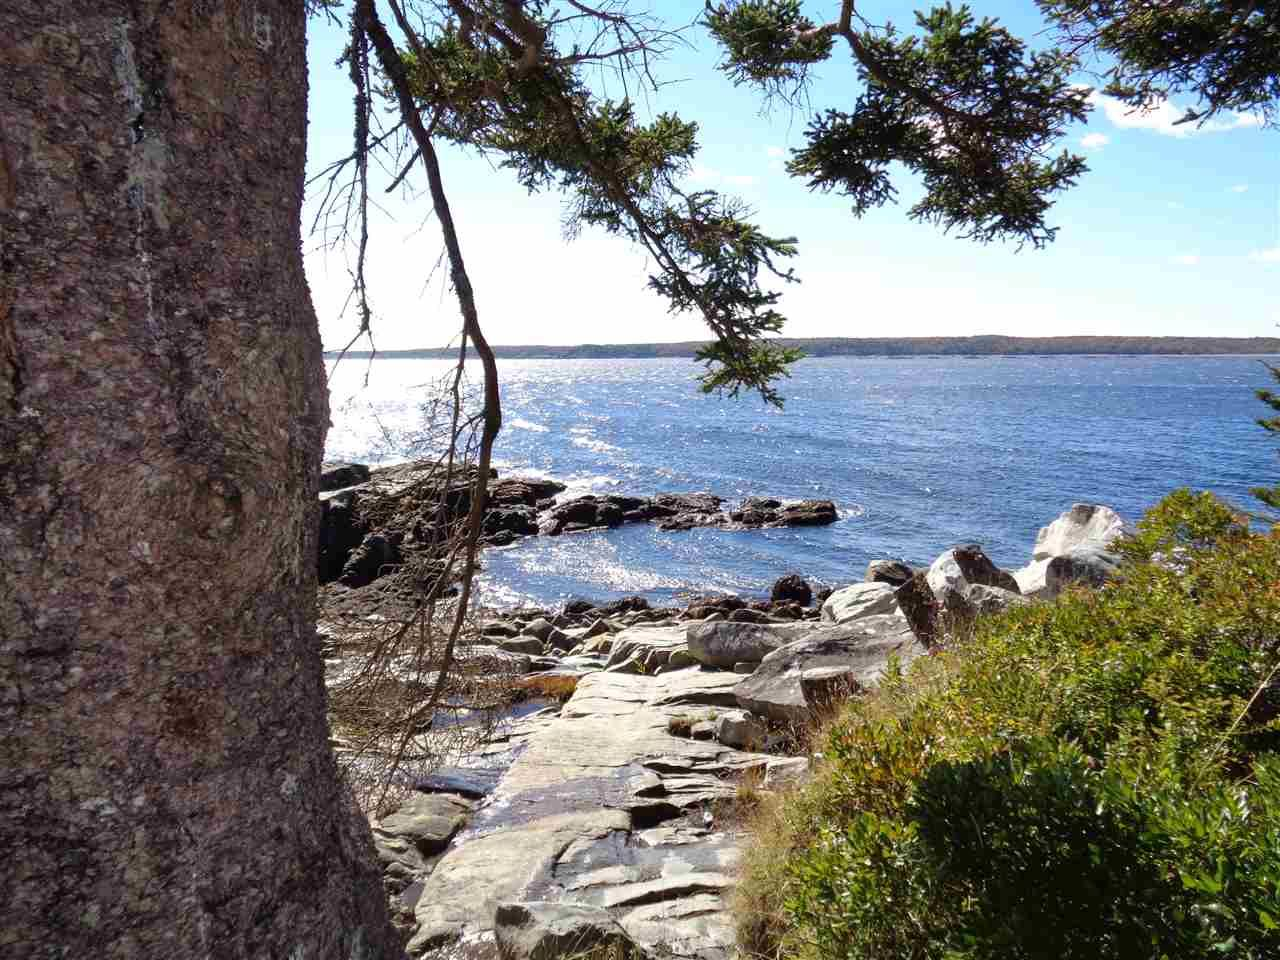 Main Photo: Lot SANDY POINT Road in Sandy Point: 407-Shelburne County Vacant Land for sale (South Shore)  : MLS®# 201509498